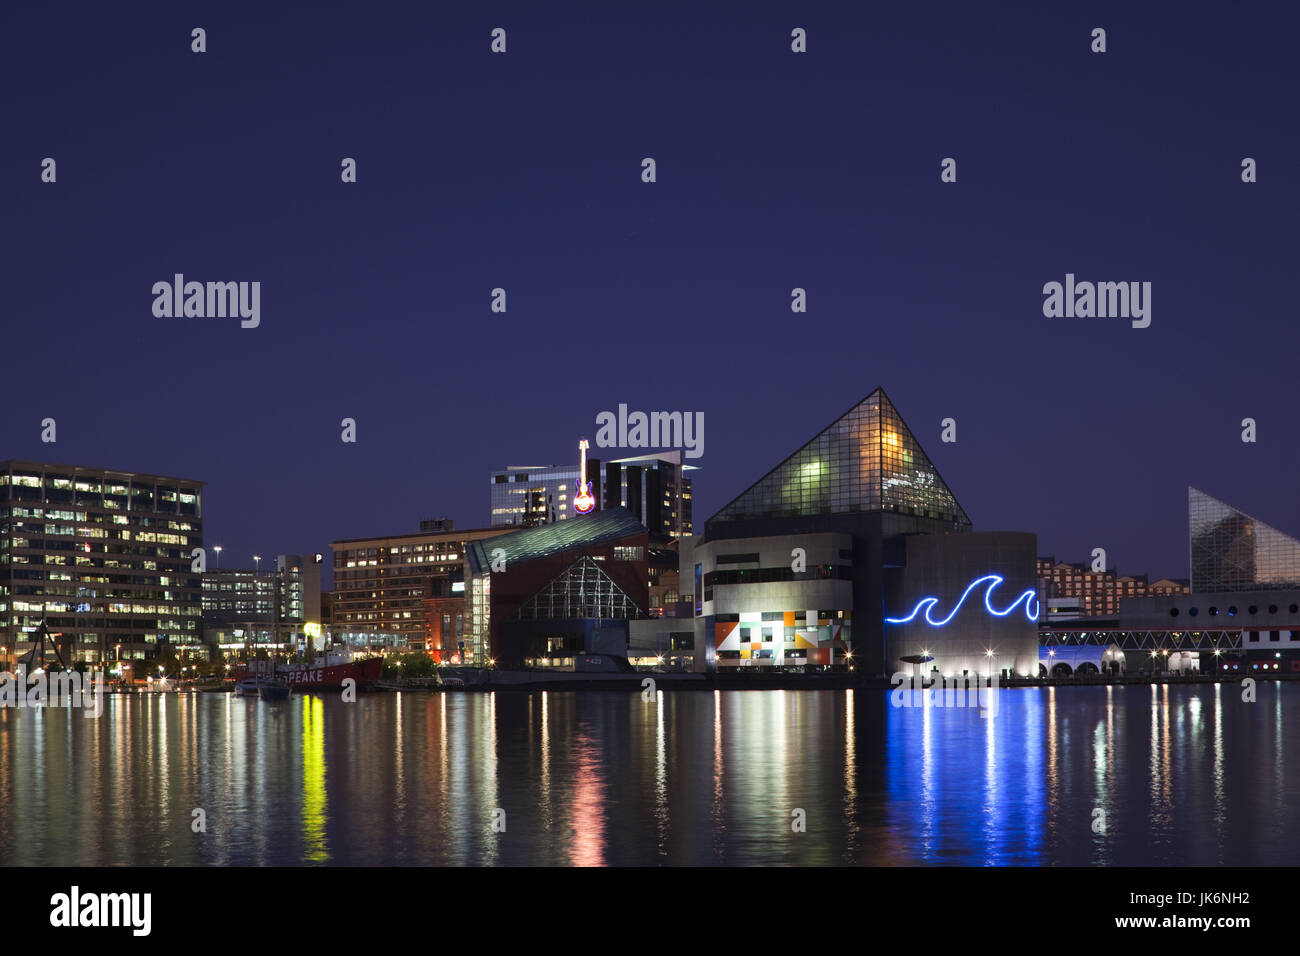 USA, Maryland, Baltimore, Inner Harbor, National Aquarium, evening - Stock Image